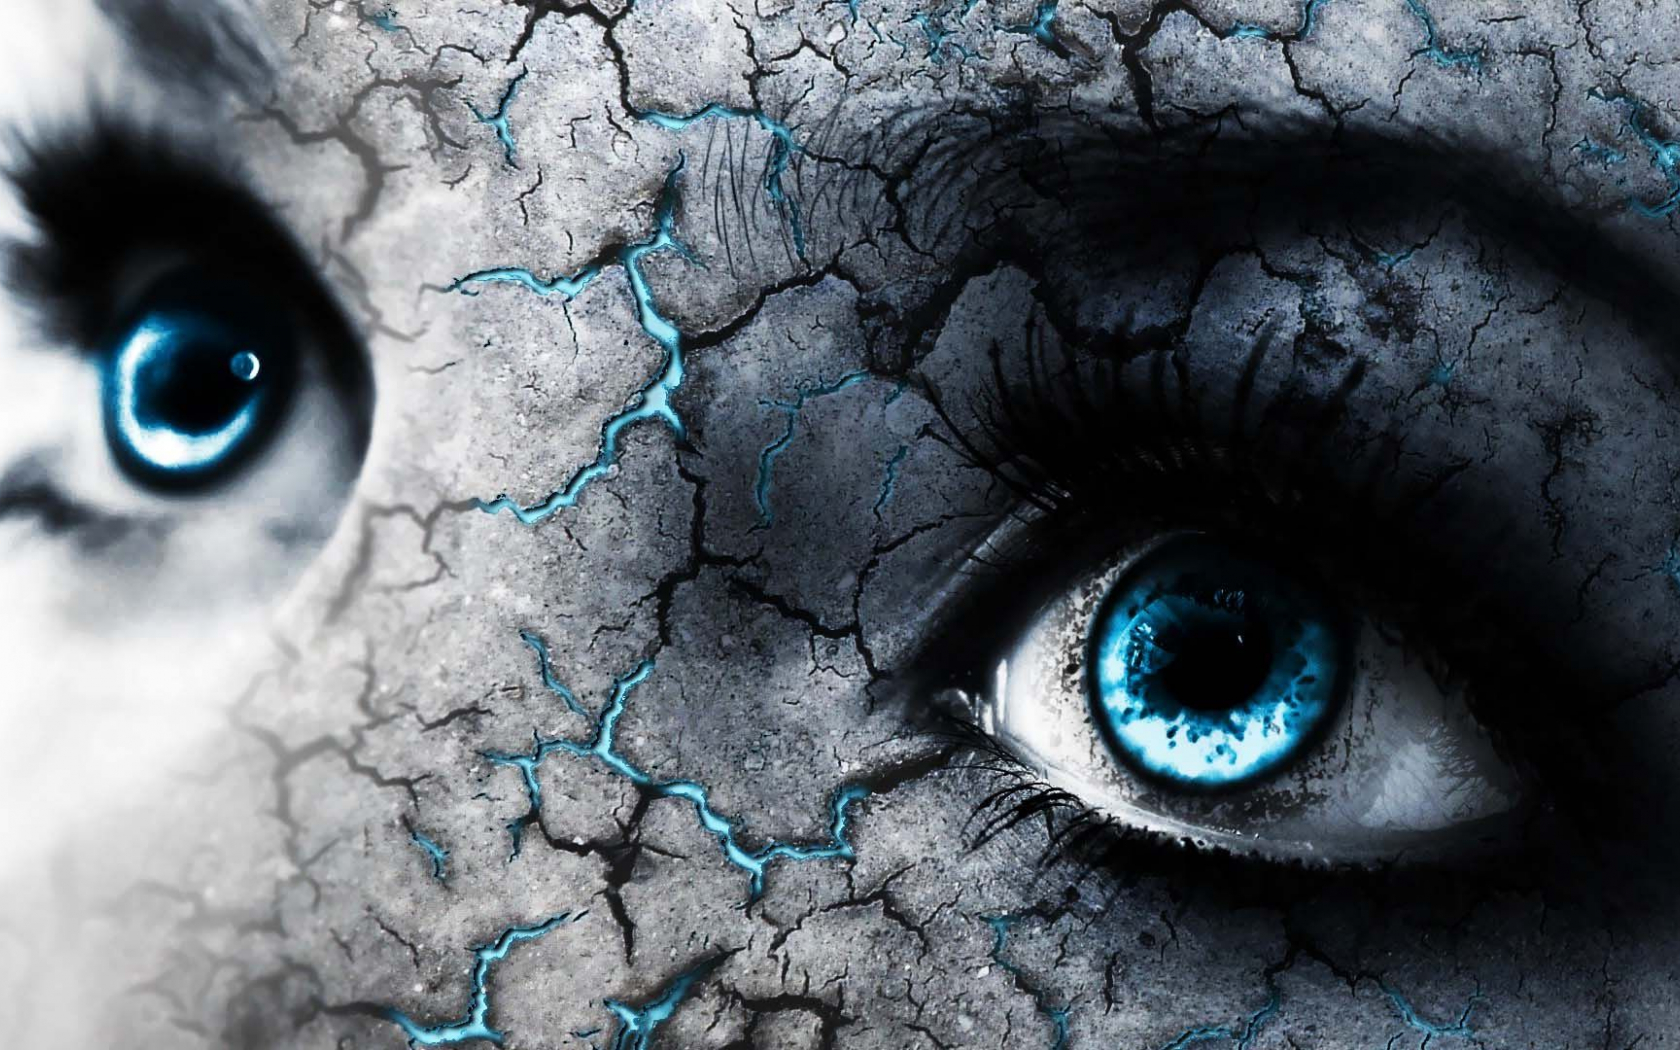 Free Download Blue Eyes And Cracked Skin 4k Wide Ultra Hd Wallpaper Hd 1920x1080 For Your Desktop Mobile Tablet Explore 69 Blue Eye Wallpaper Cute Blue Wallpaper Pretty Blue